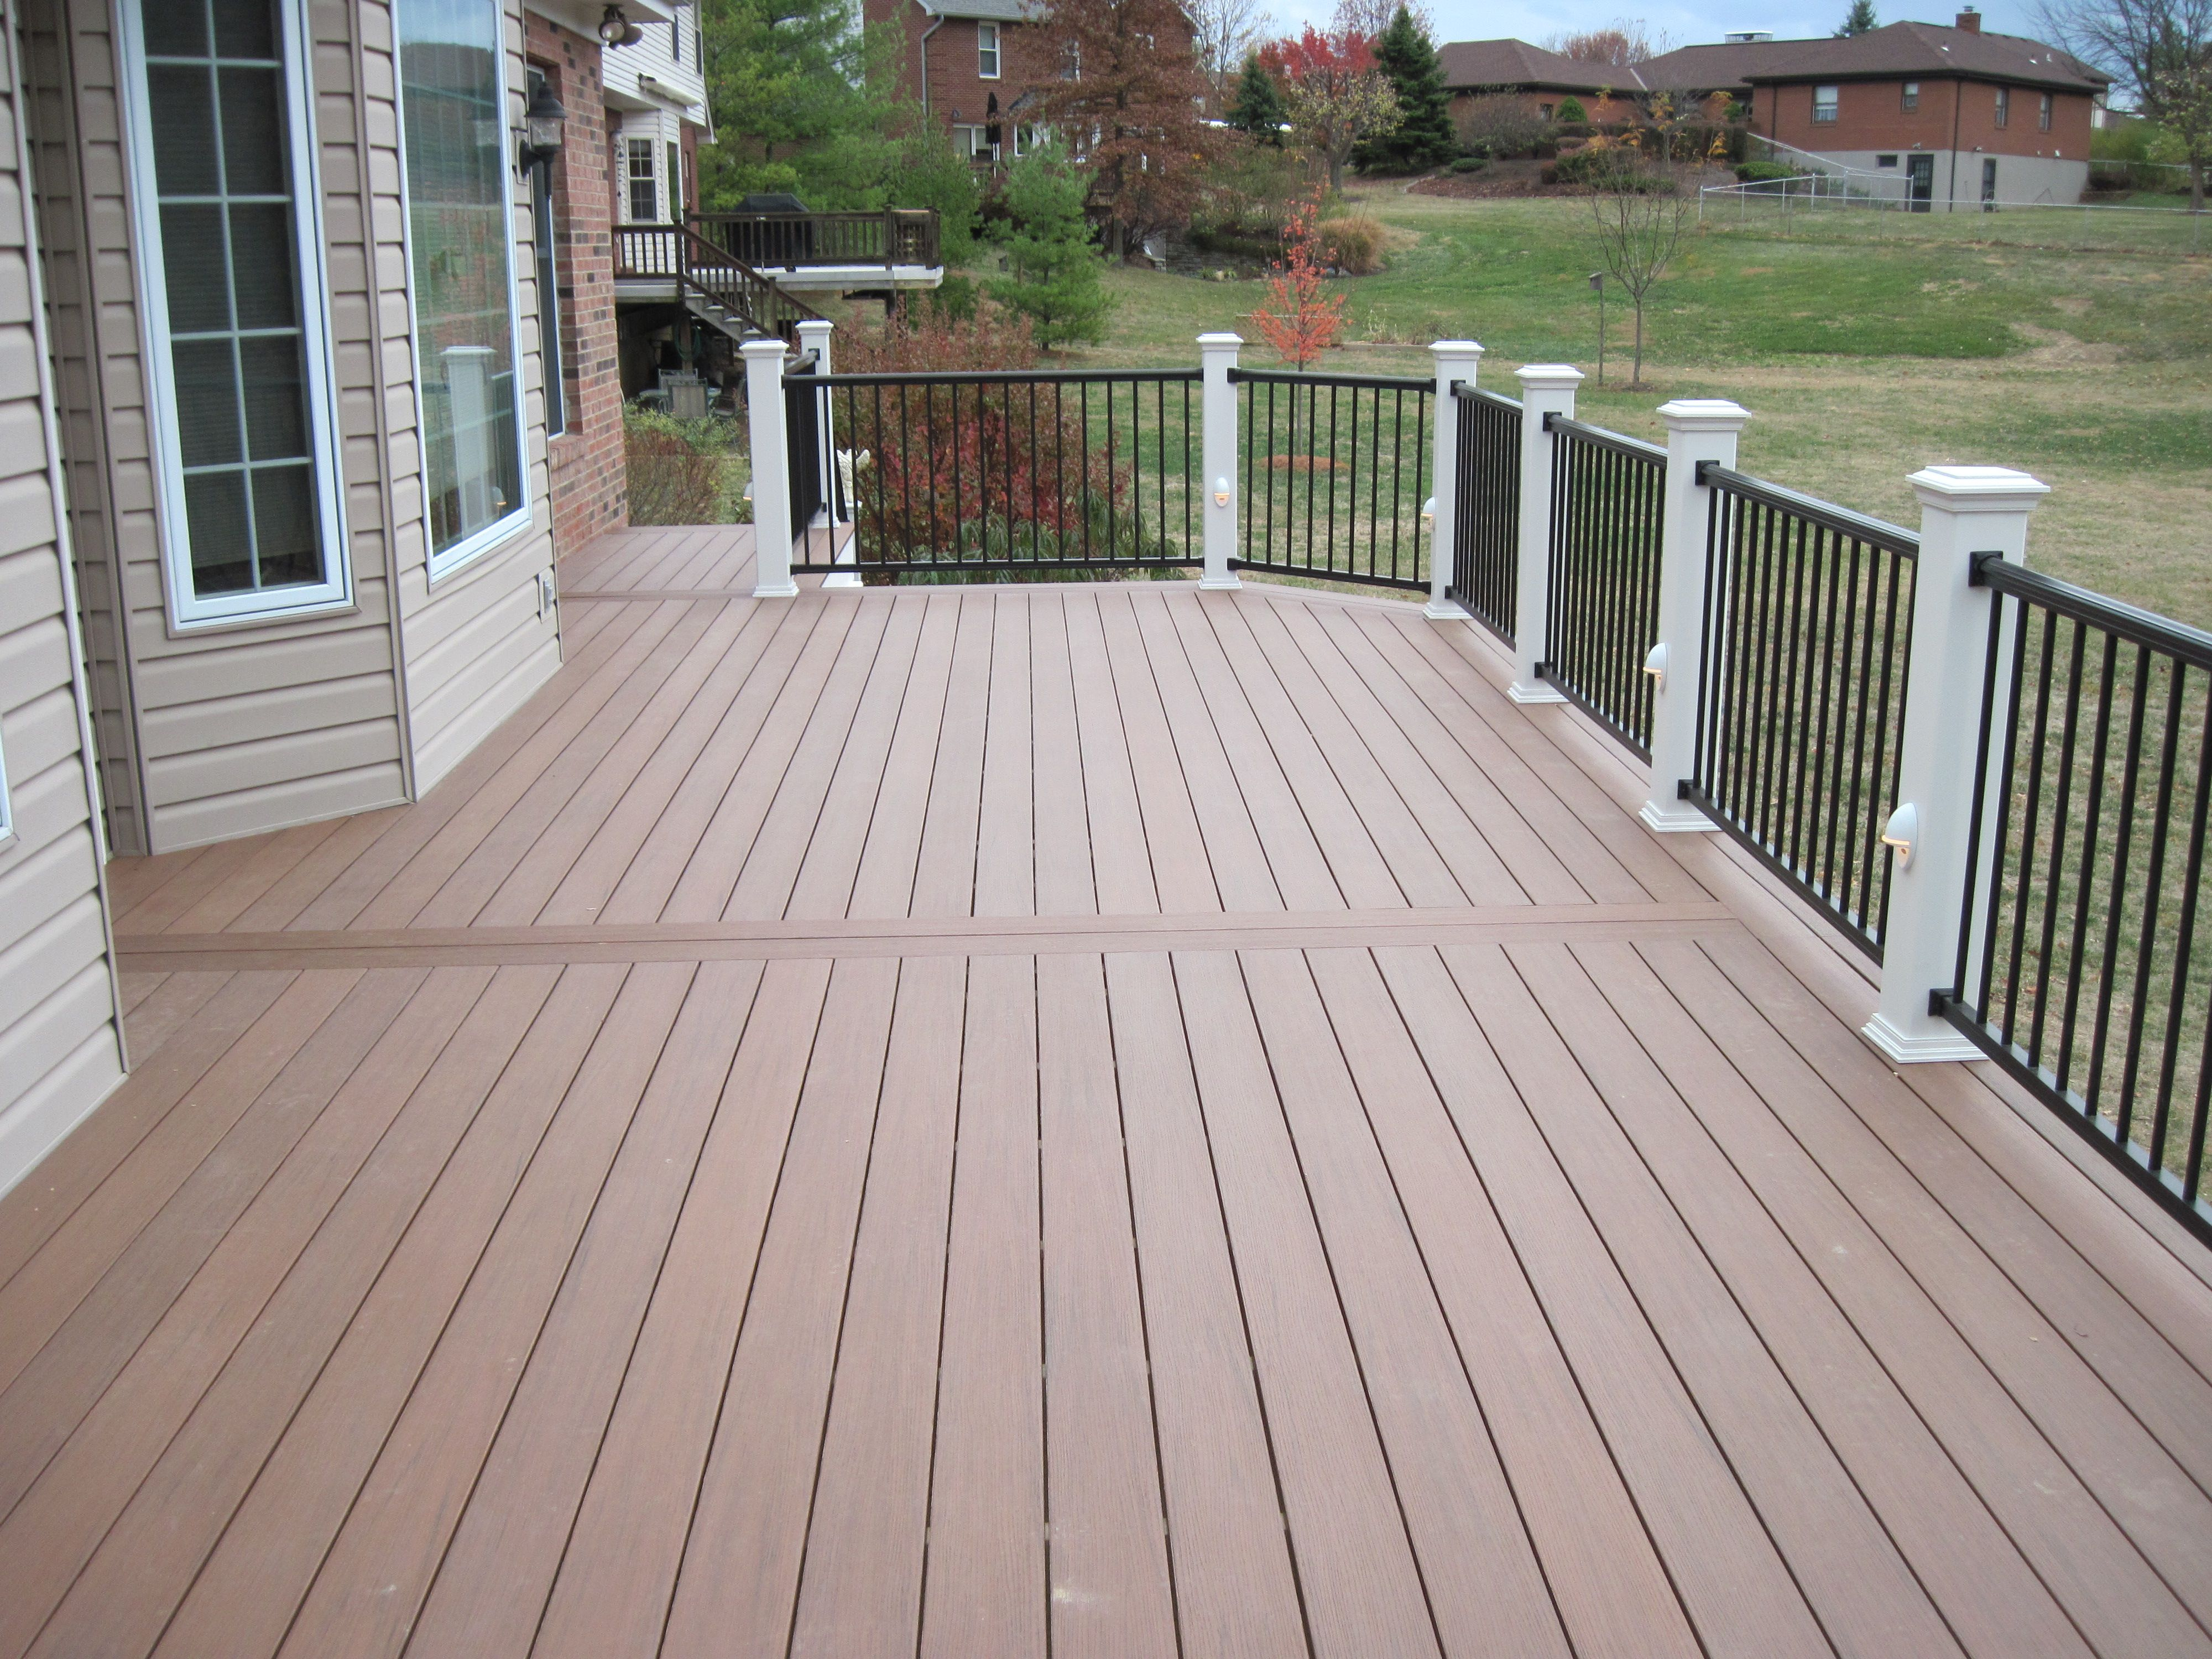 Maintenance free brahma deck boards aluminum railings and for Outdoor decking boards